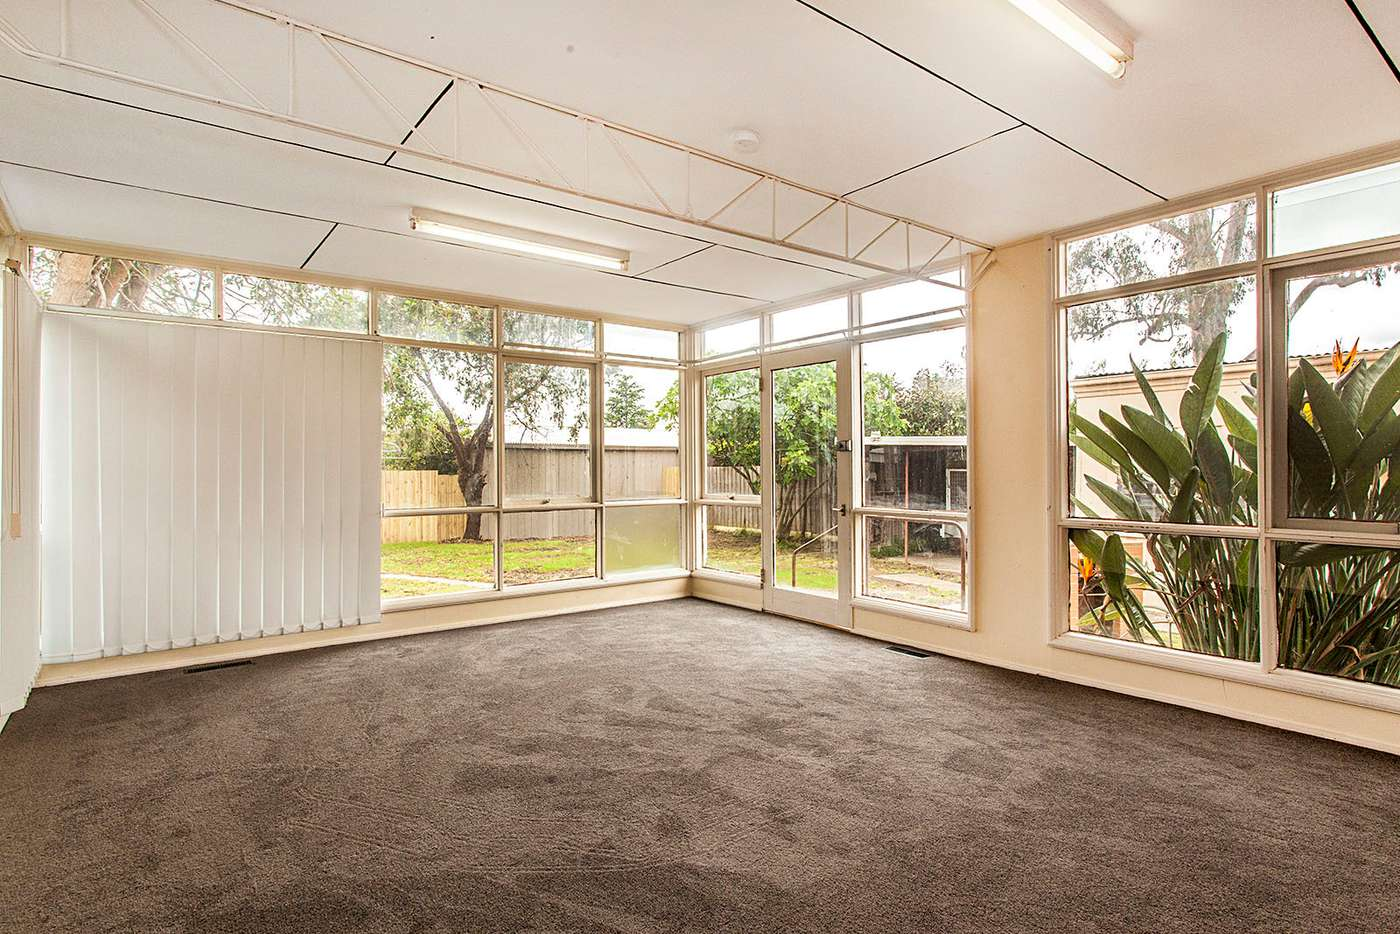 Seventh view of Homely house listing, 23 Quarry Road, Mitcham VIC 3132